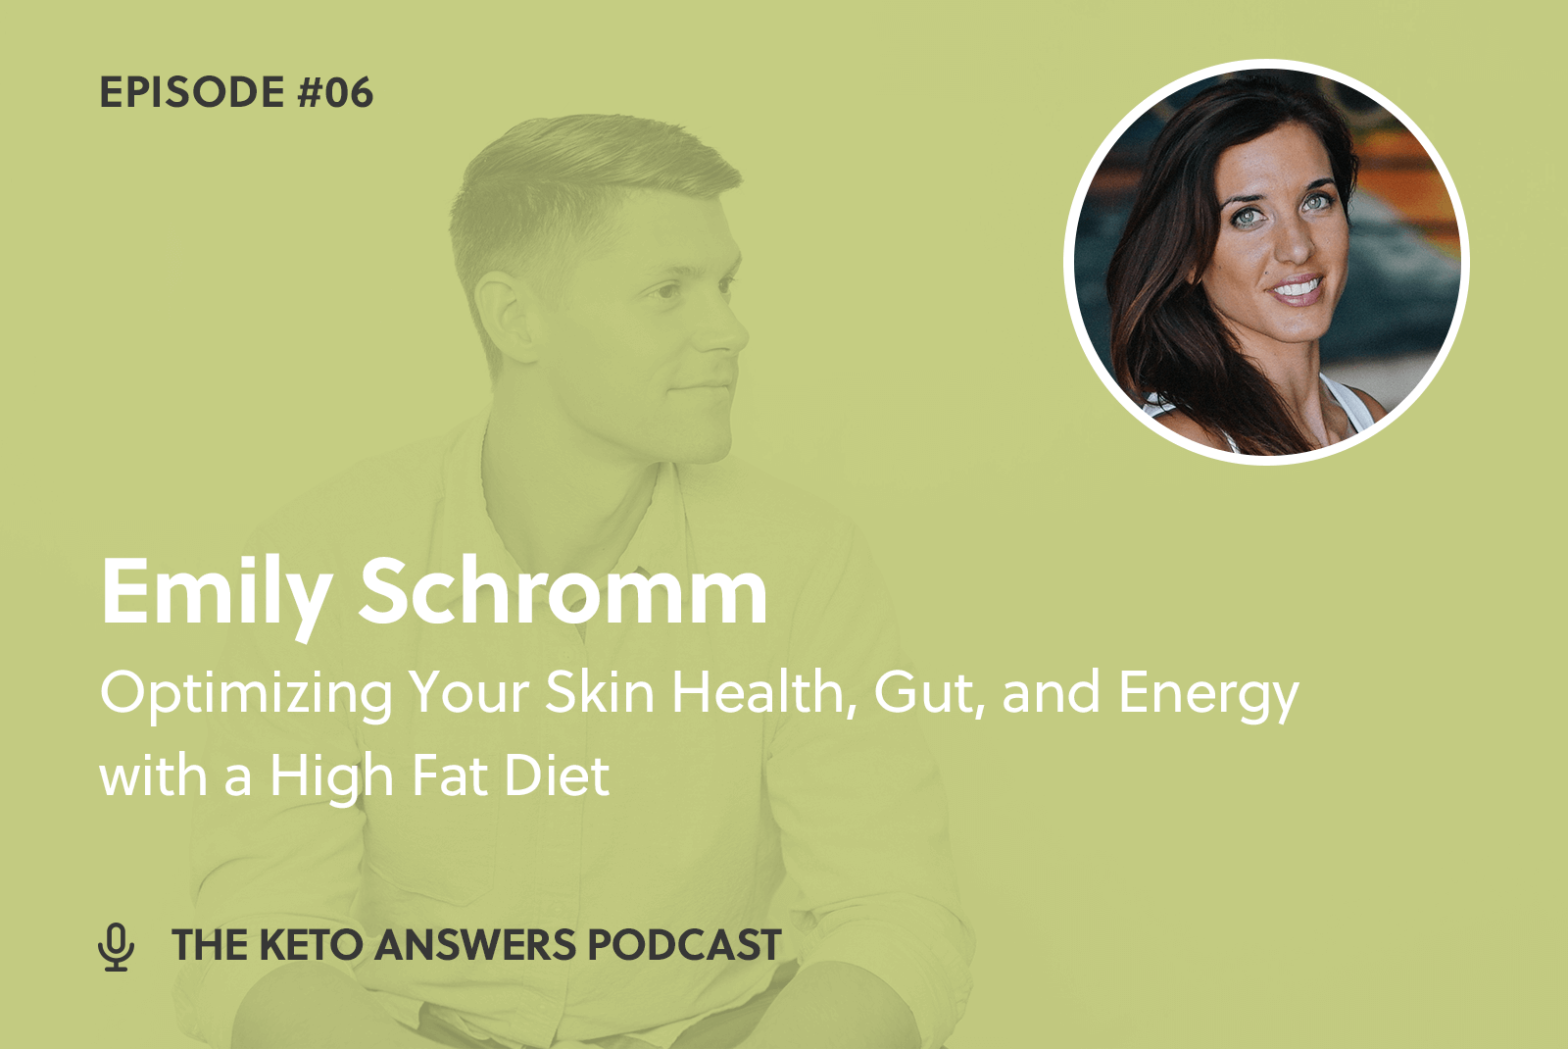 006: Optimizing Your Skin Health, Gut, and Energy with a High Fat Diet - Emily Schromm